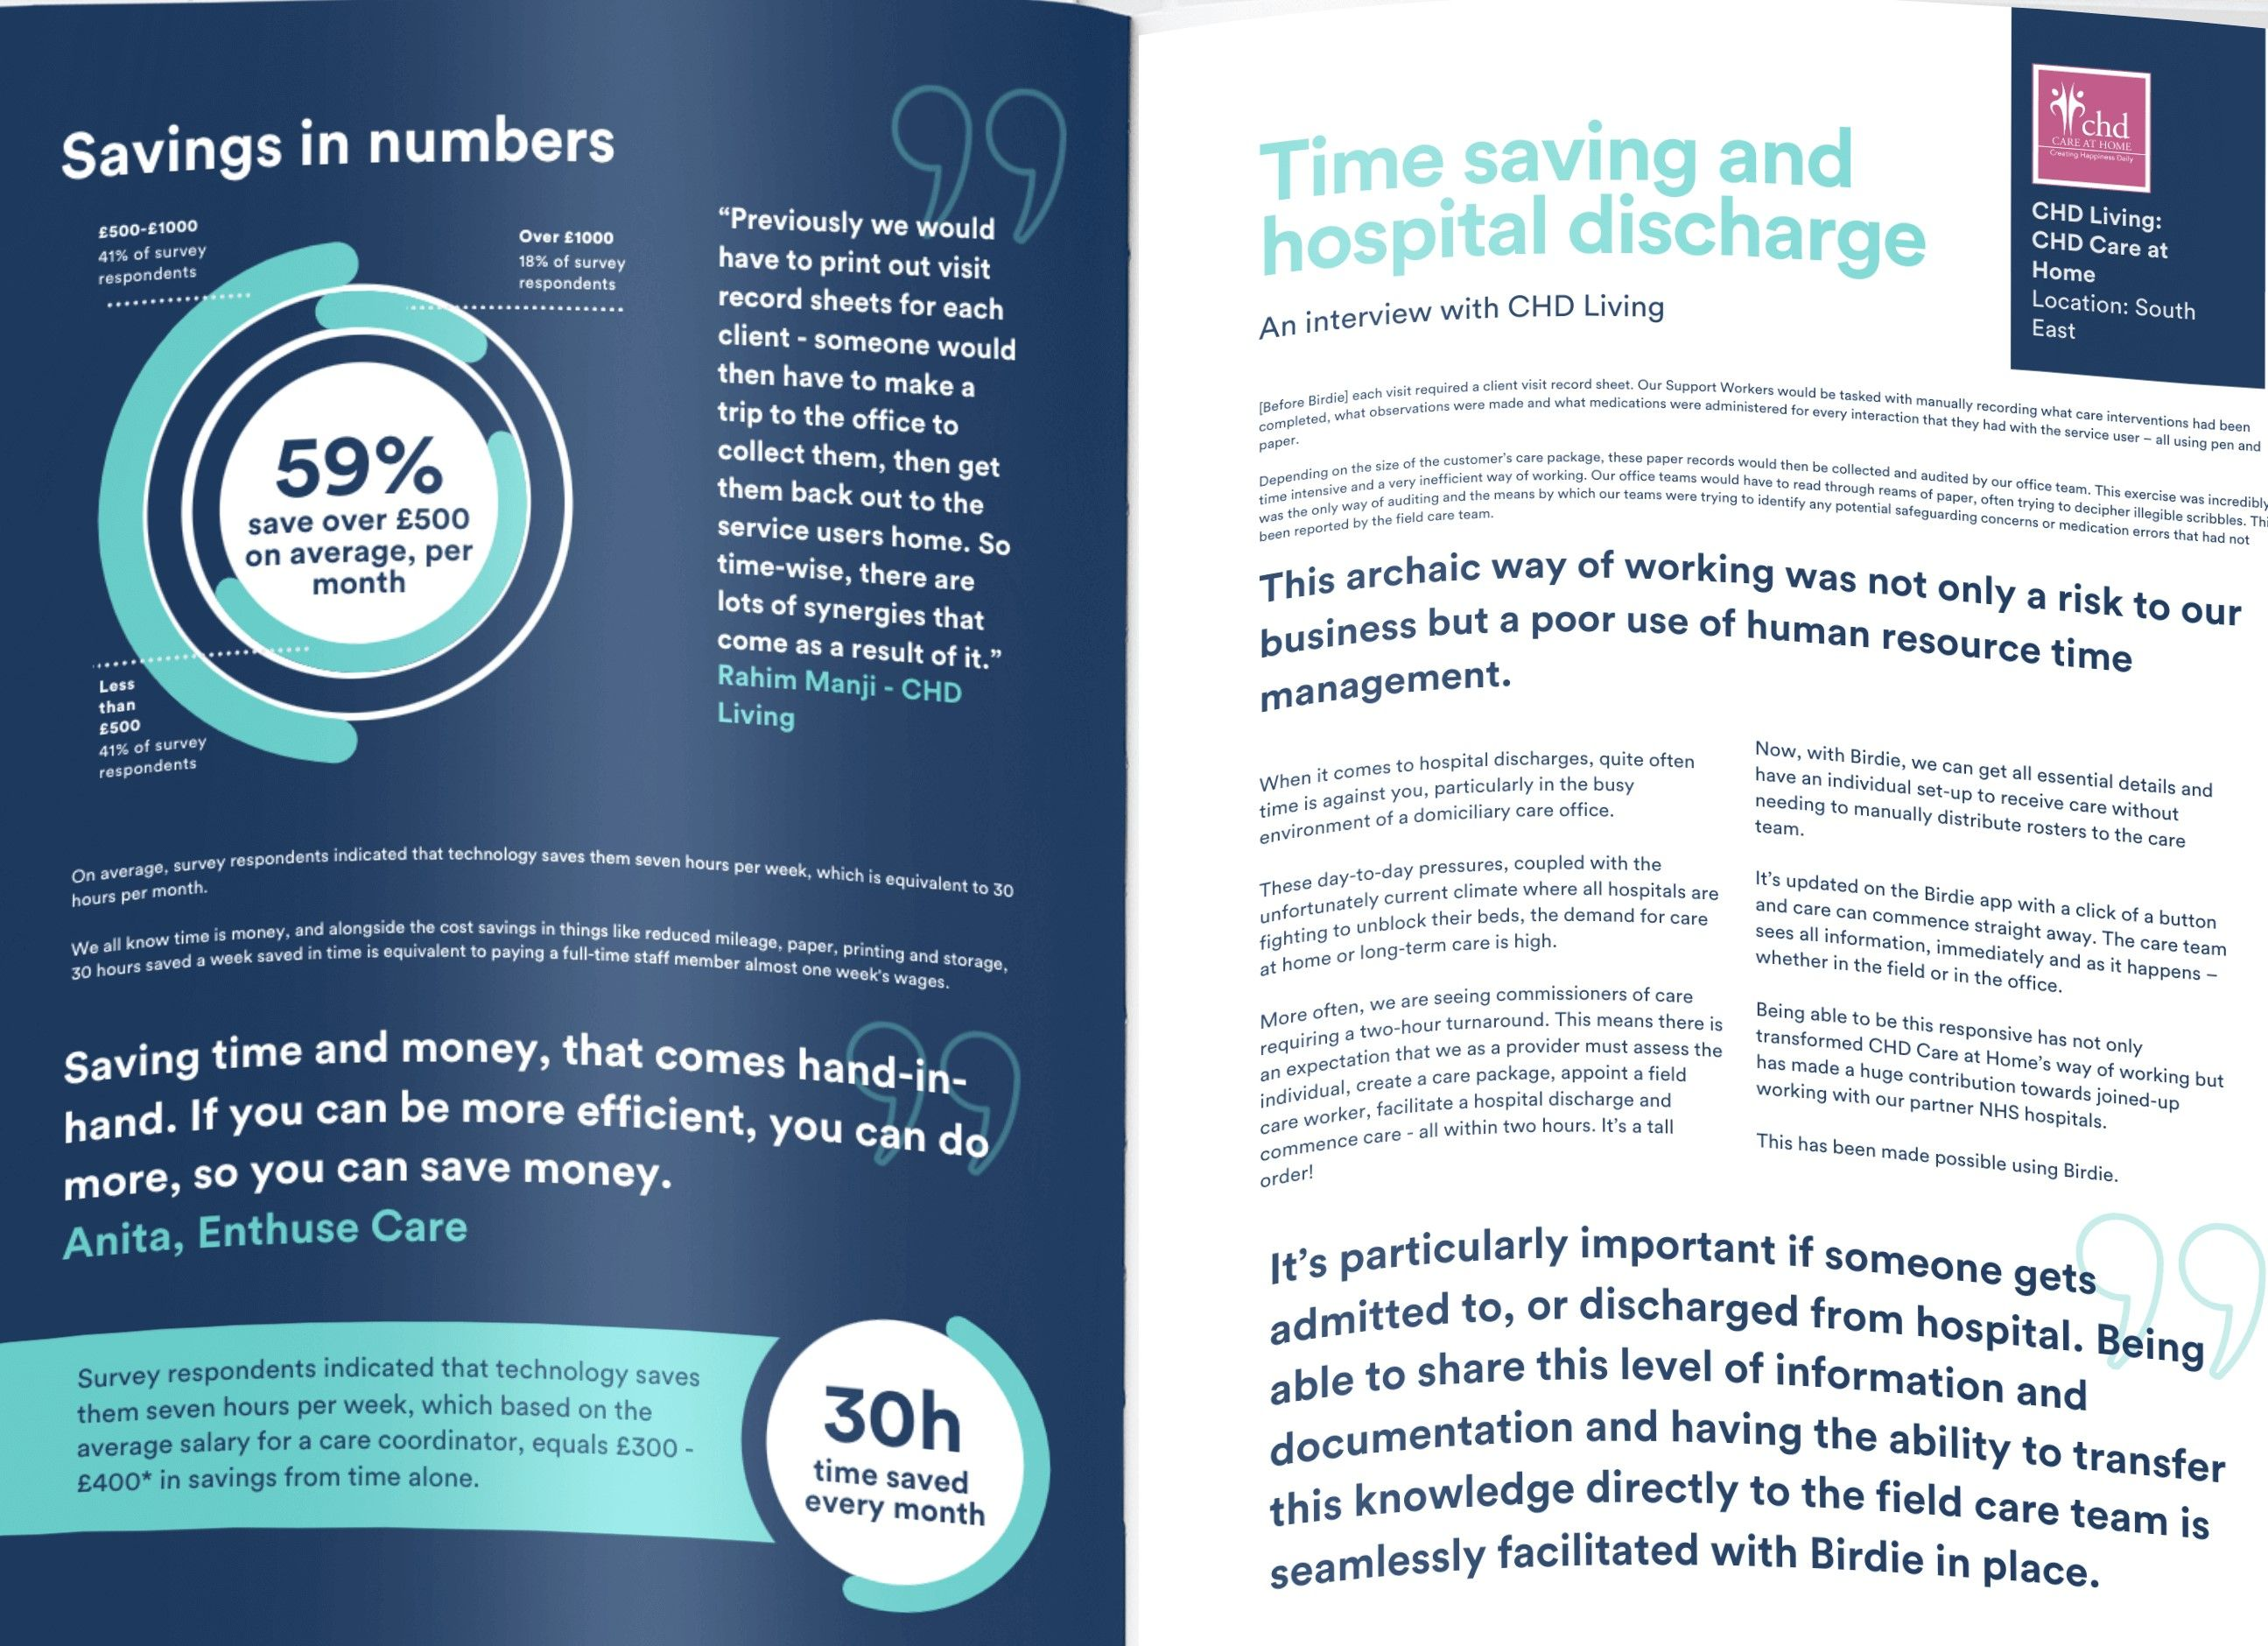 New report finds that 60% of home care providers save 30 hours a month with technology